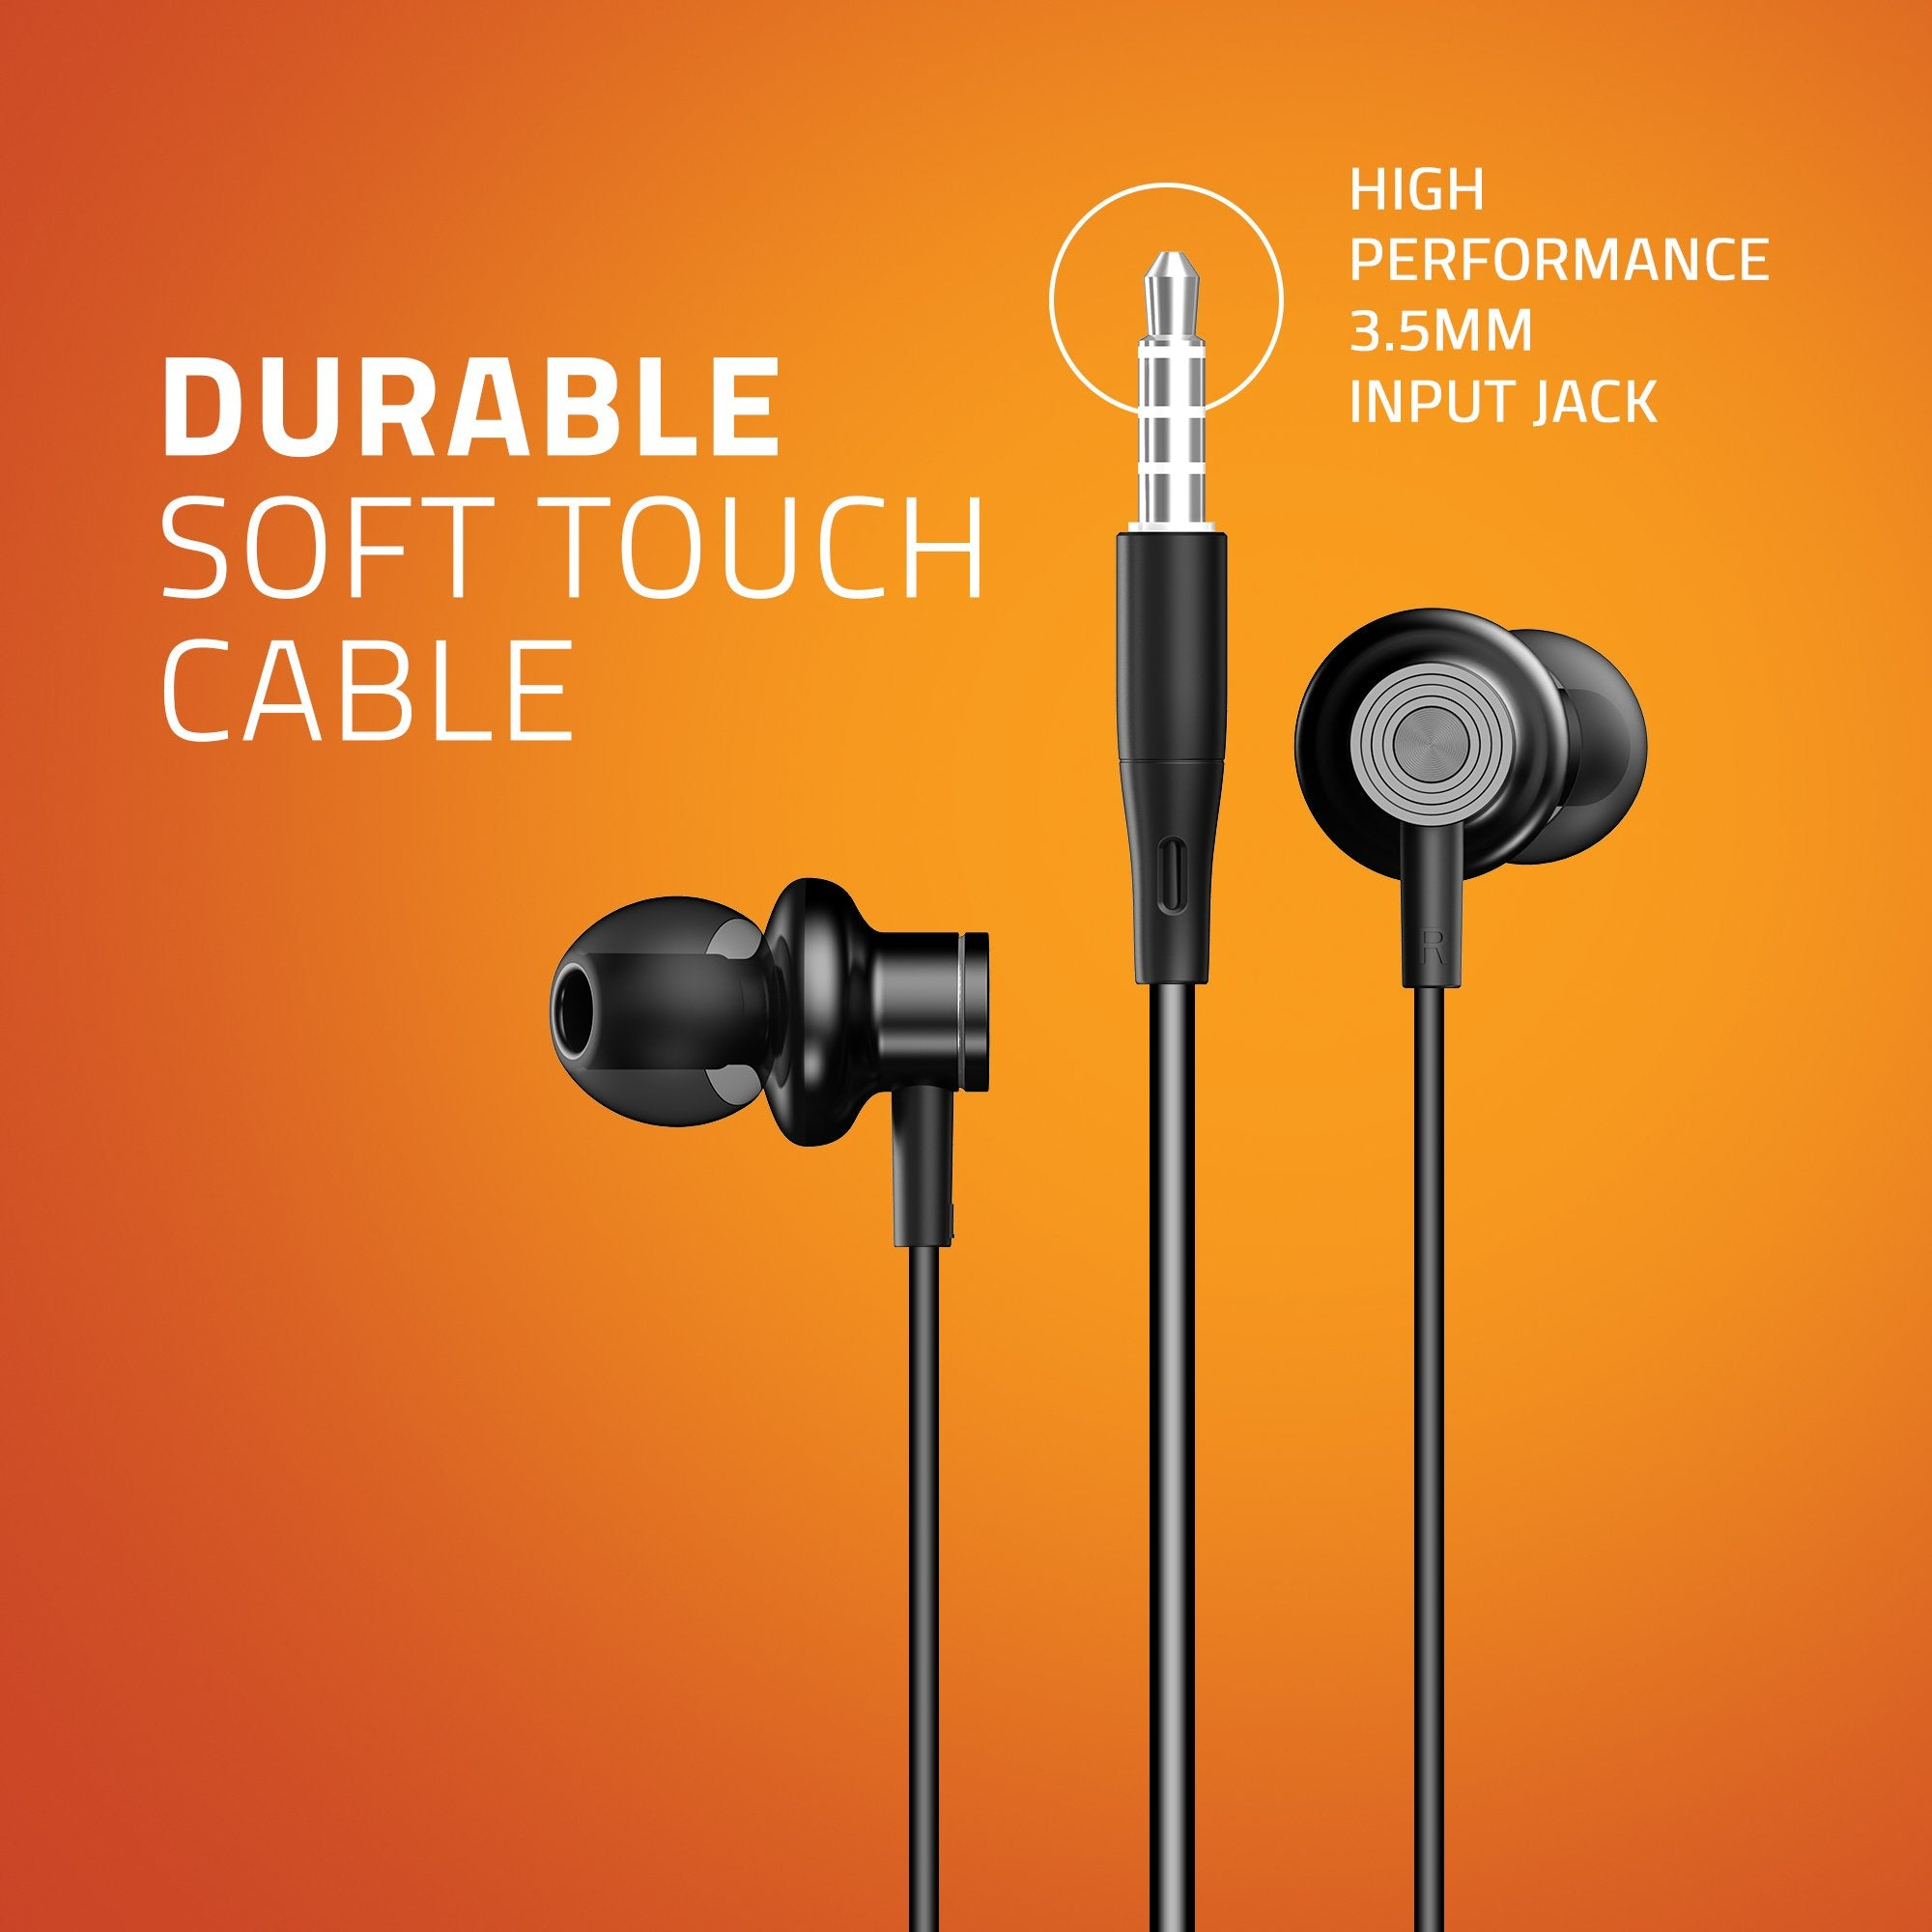 Artis E600M Earphones With Mic - Durable Soft touch Cable